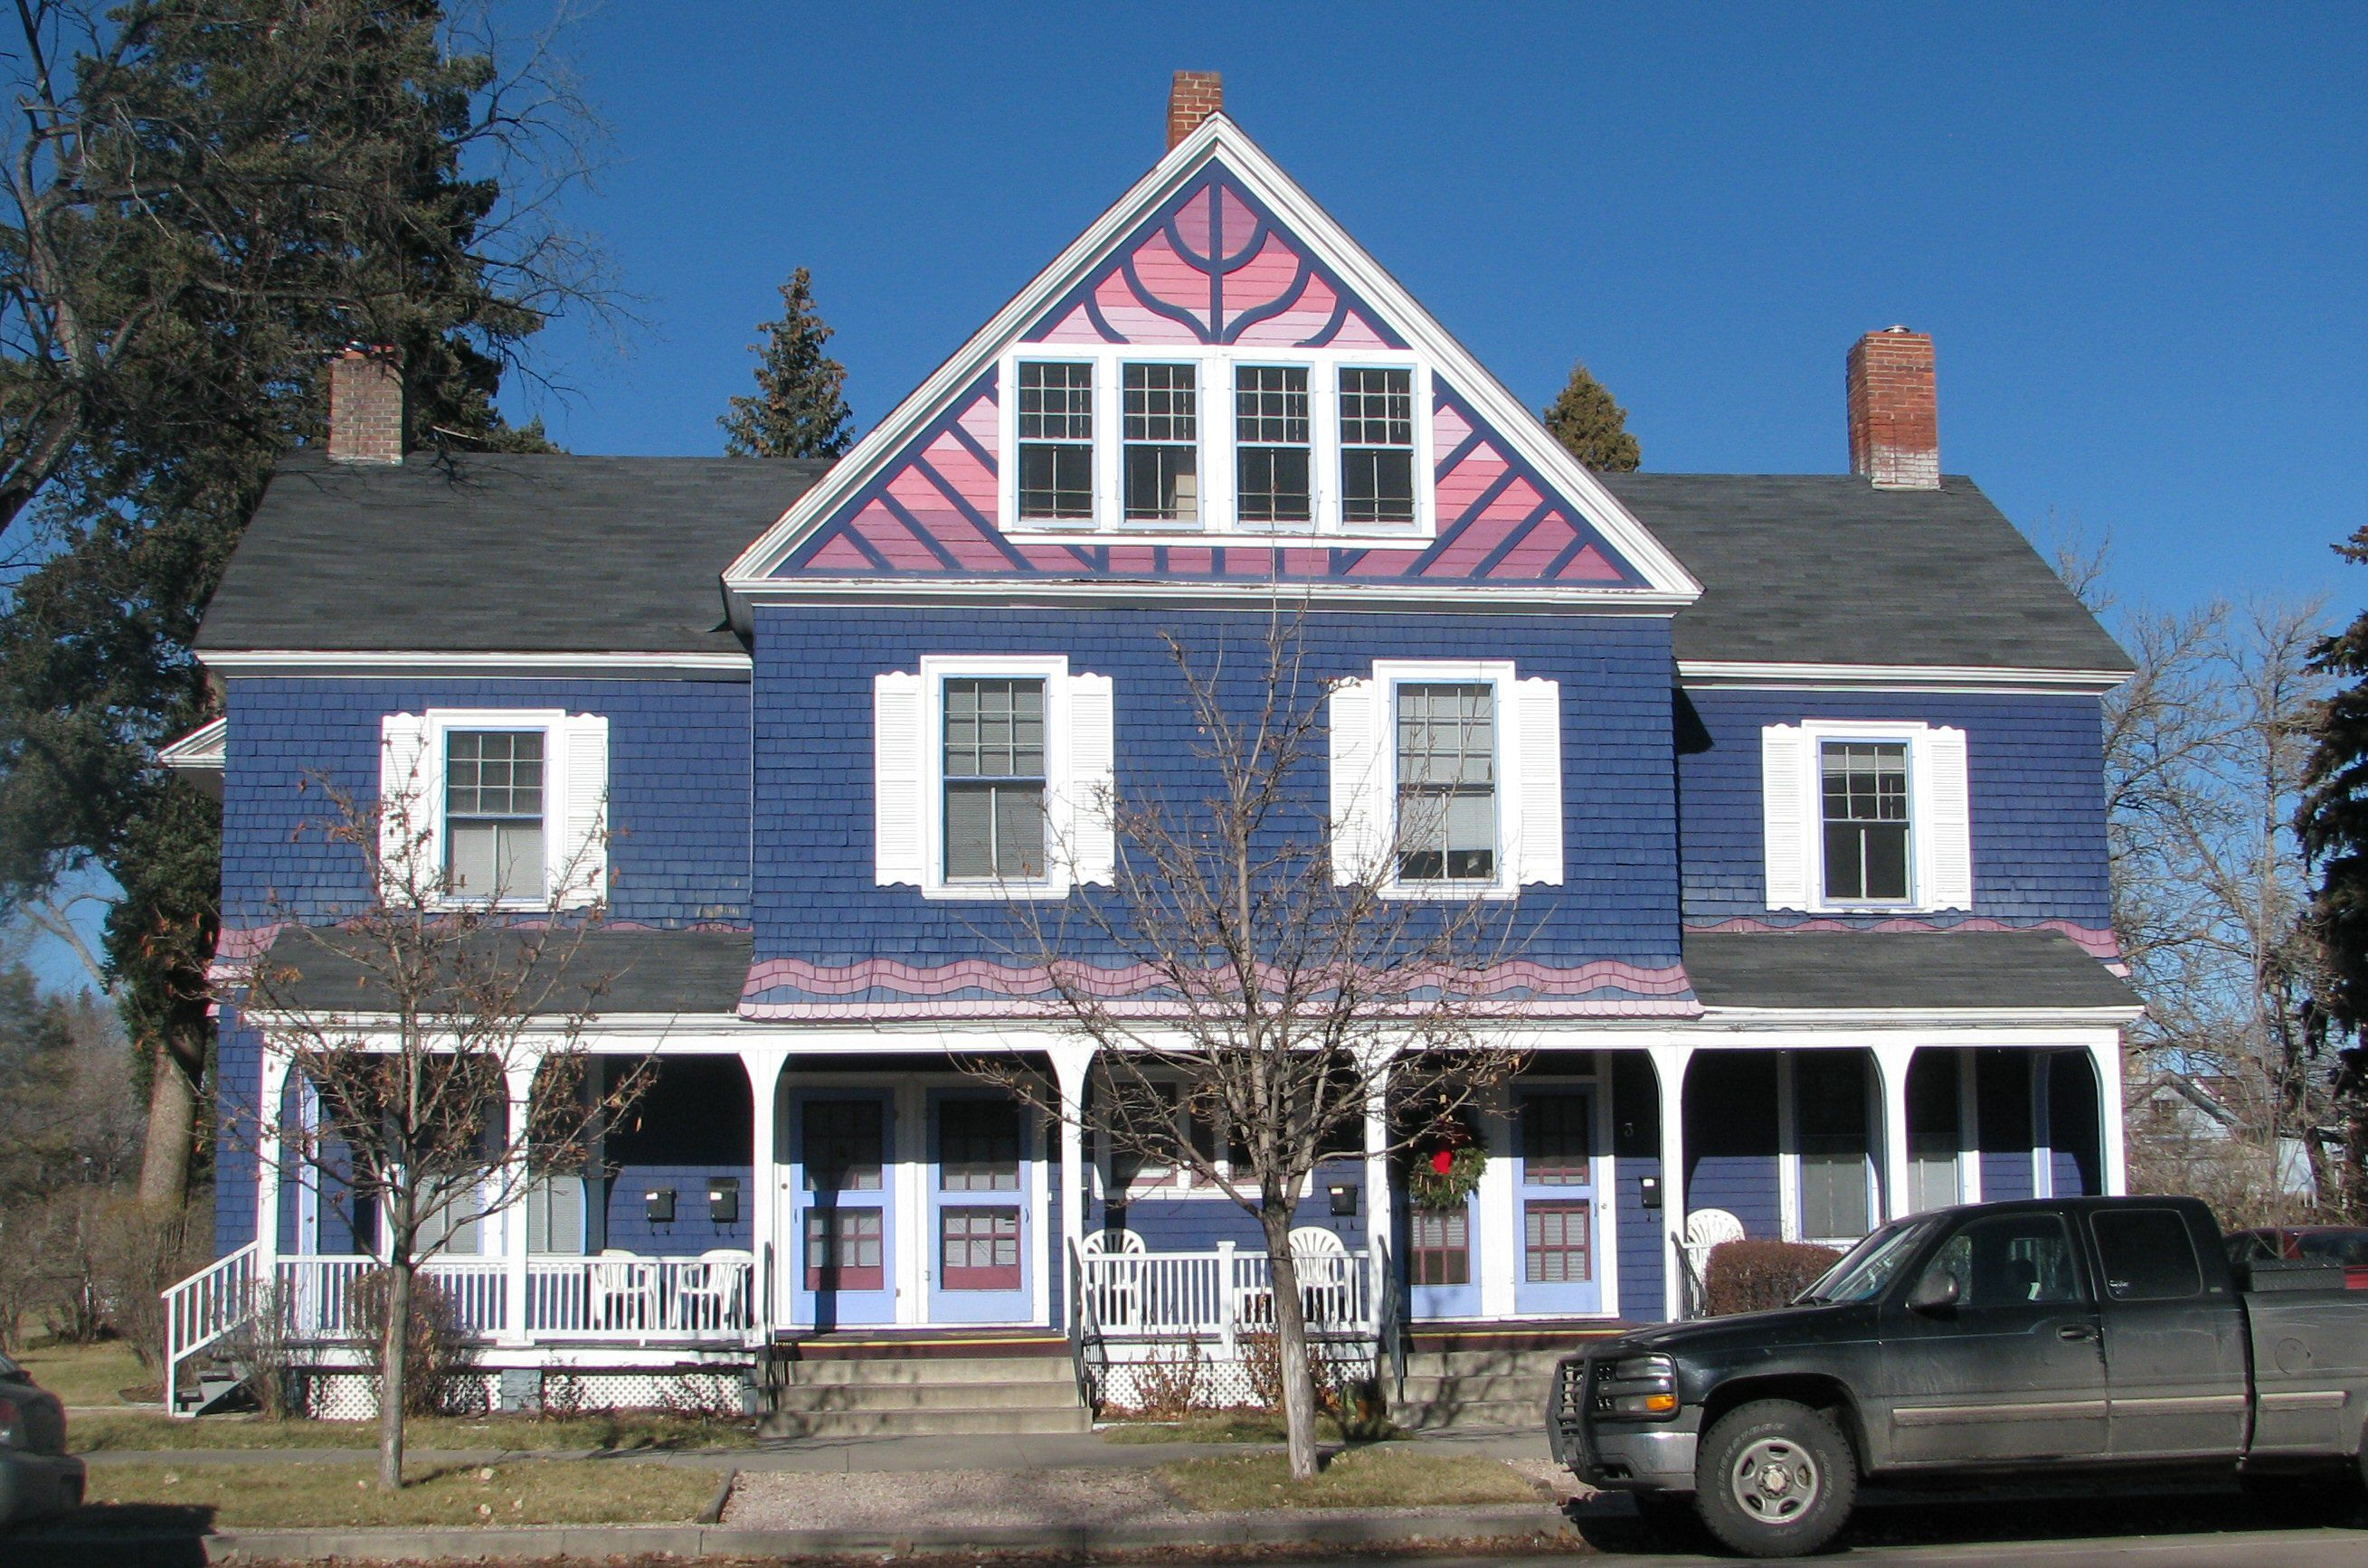 Blue Victorian House with Pink Gable